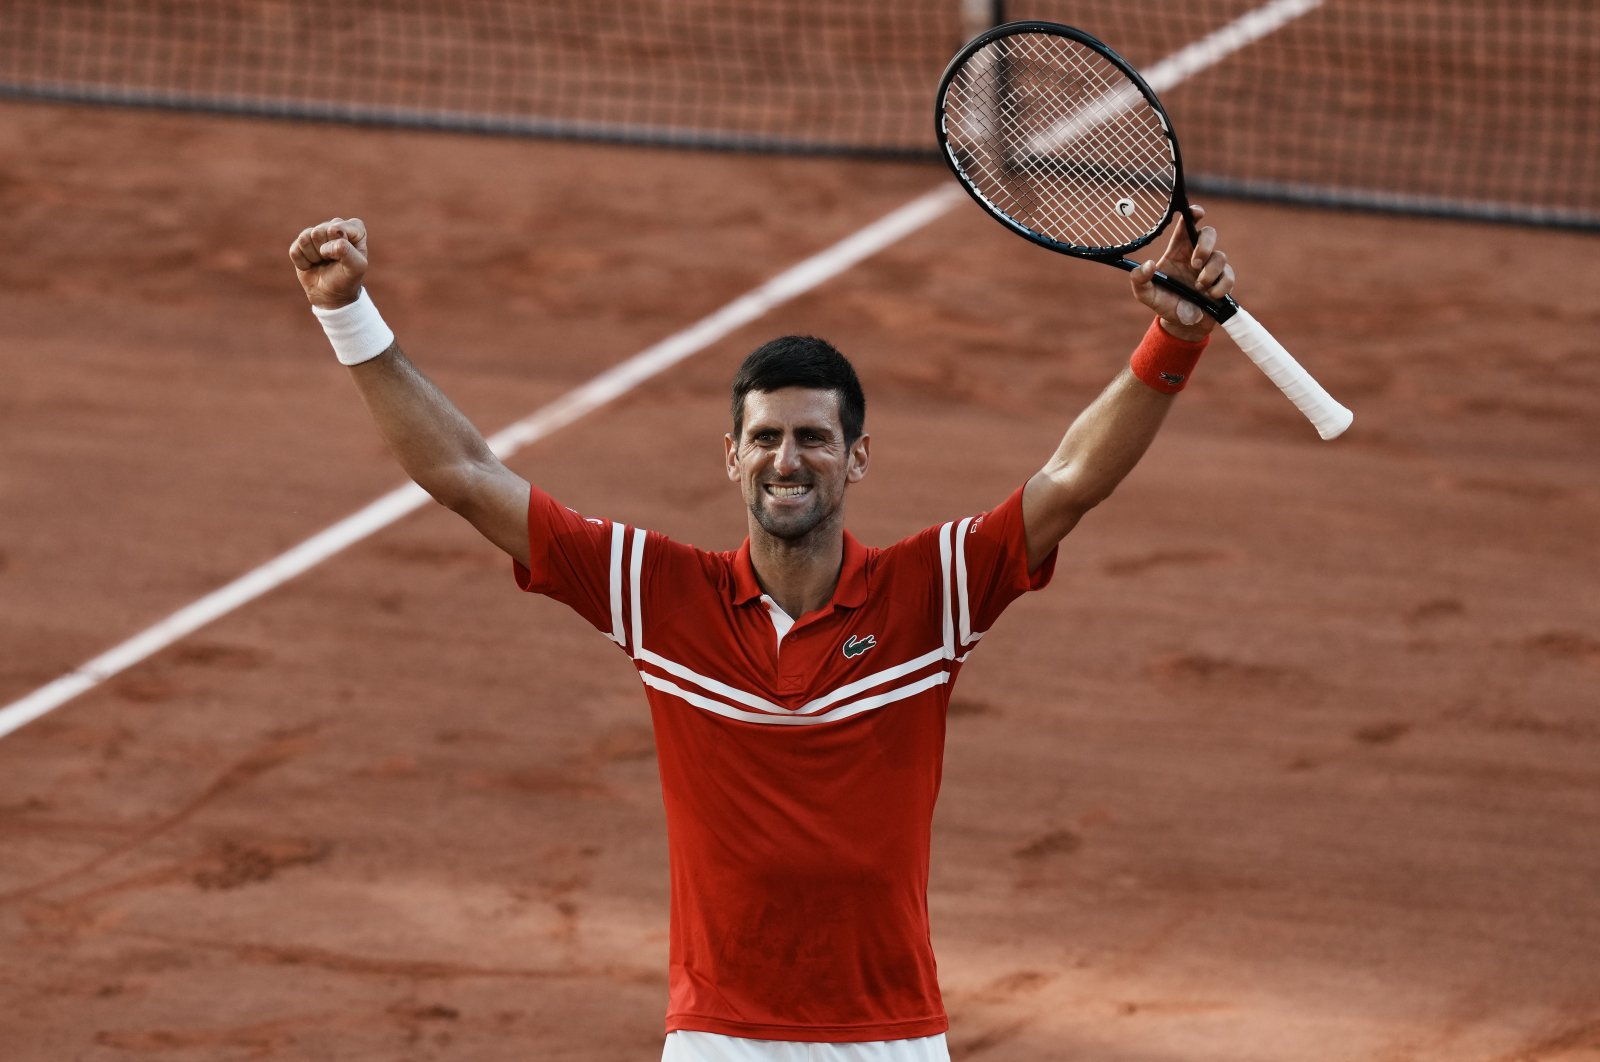 Serbia's Novak Djokovic celebrates after defeating Stefanos Tsitsipas of Greece in the French Open final at the Roland Garros, Paris, France, June 13, 2021. (AP Photo)